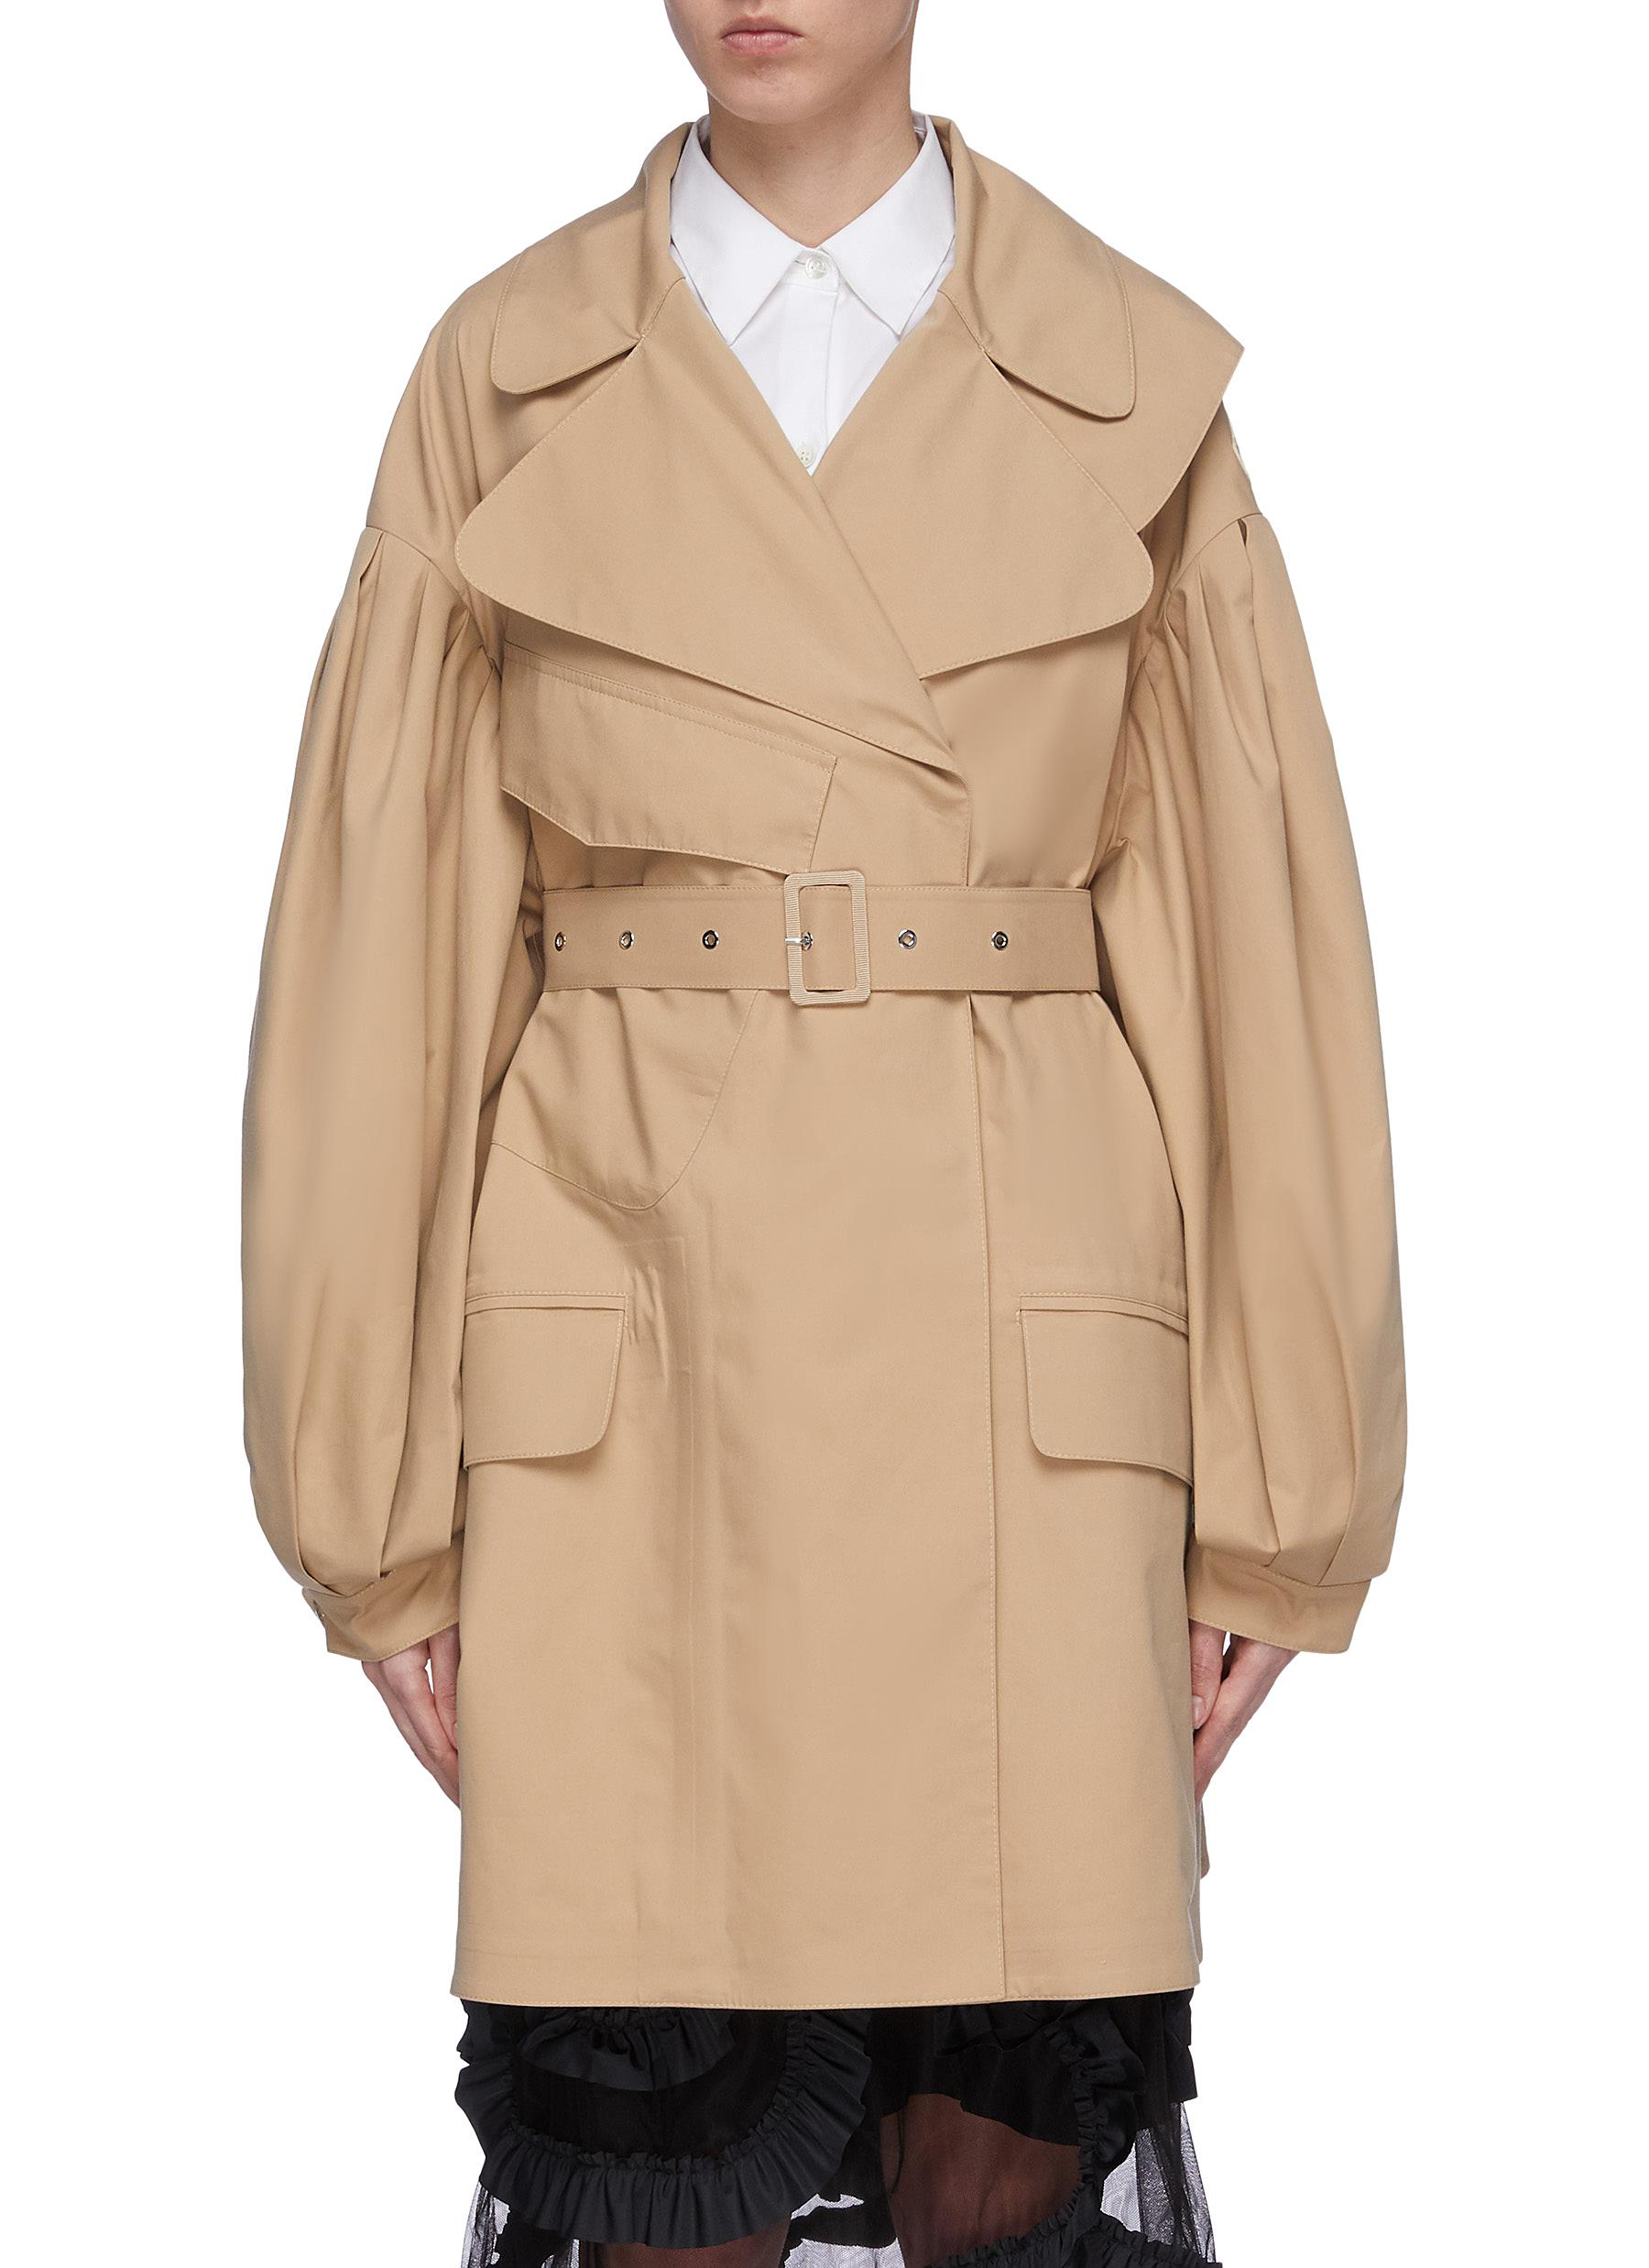 x Simone Rocha belted puff sleeve trench coat by Moncler Genius